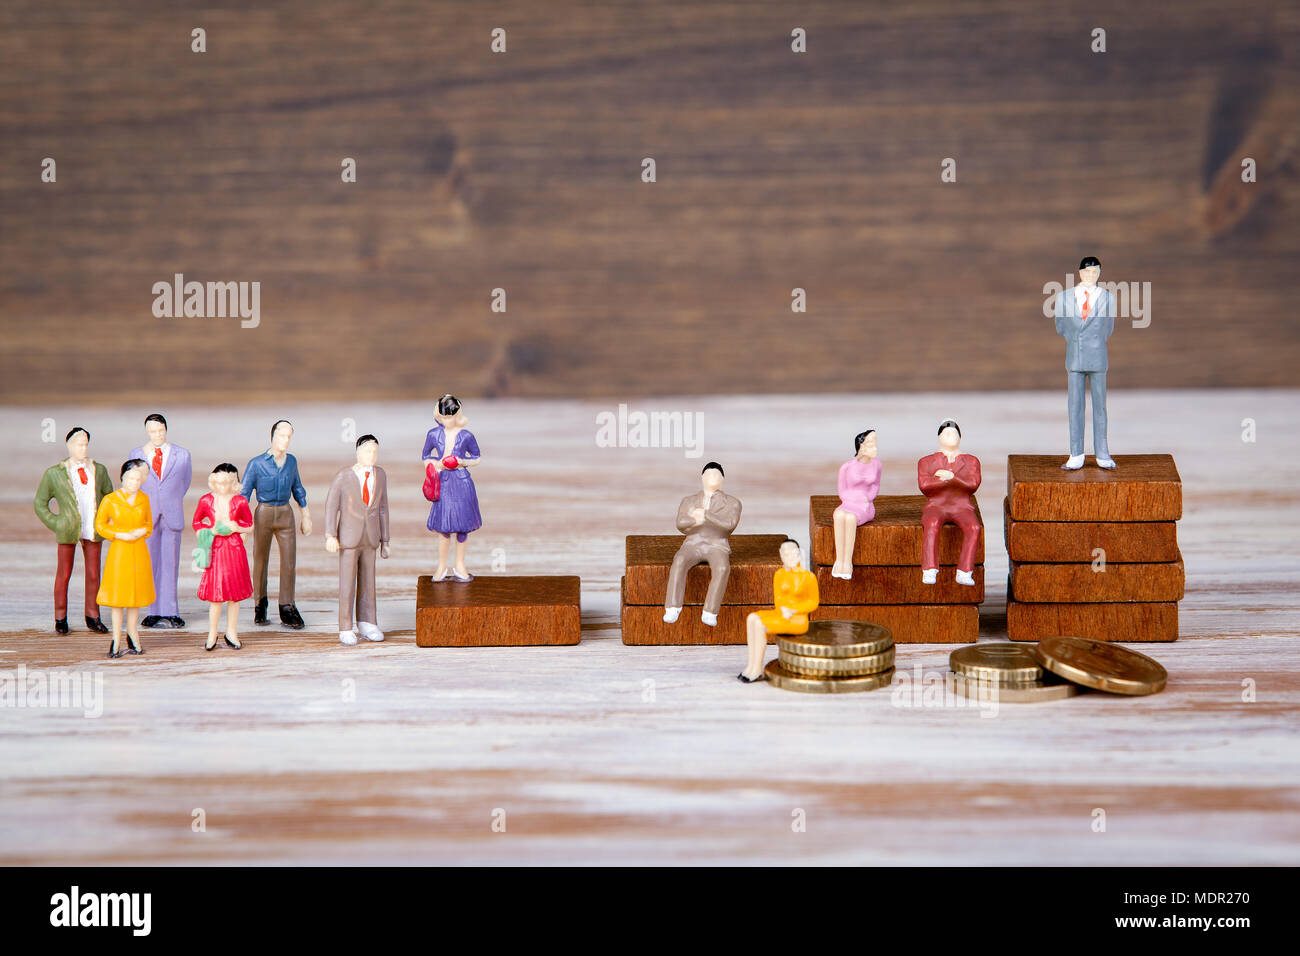 Career ladder. The future of work, competition and business background. Colorful Human miniatures - Stock Image